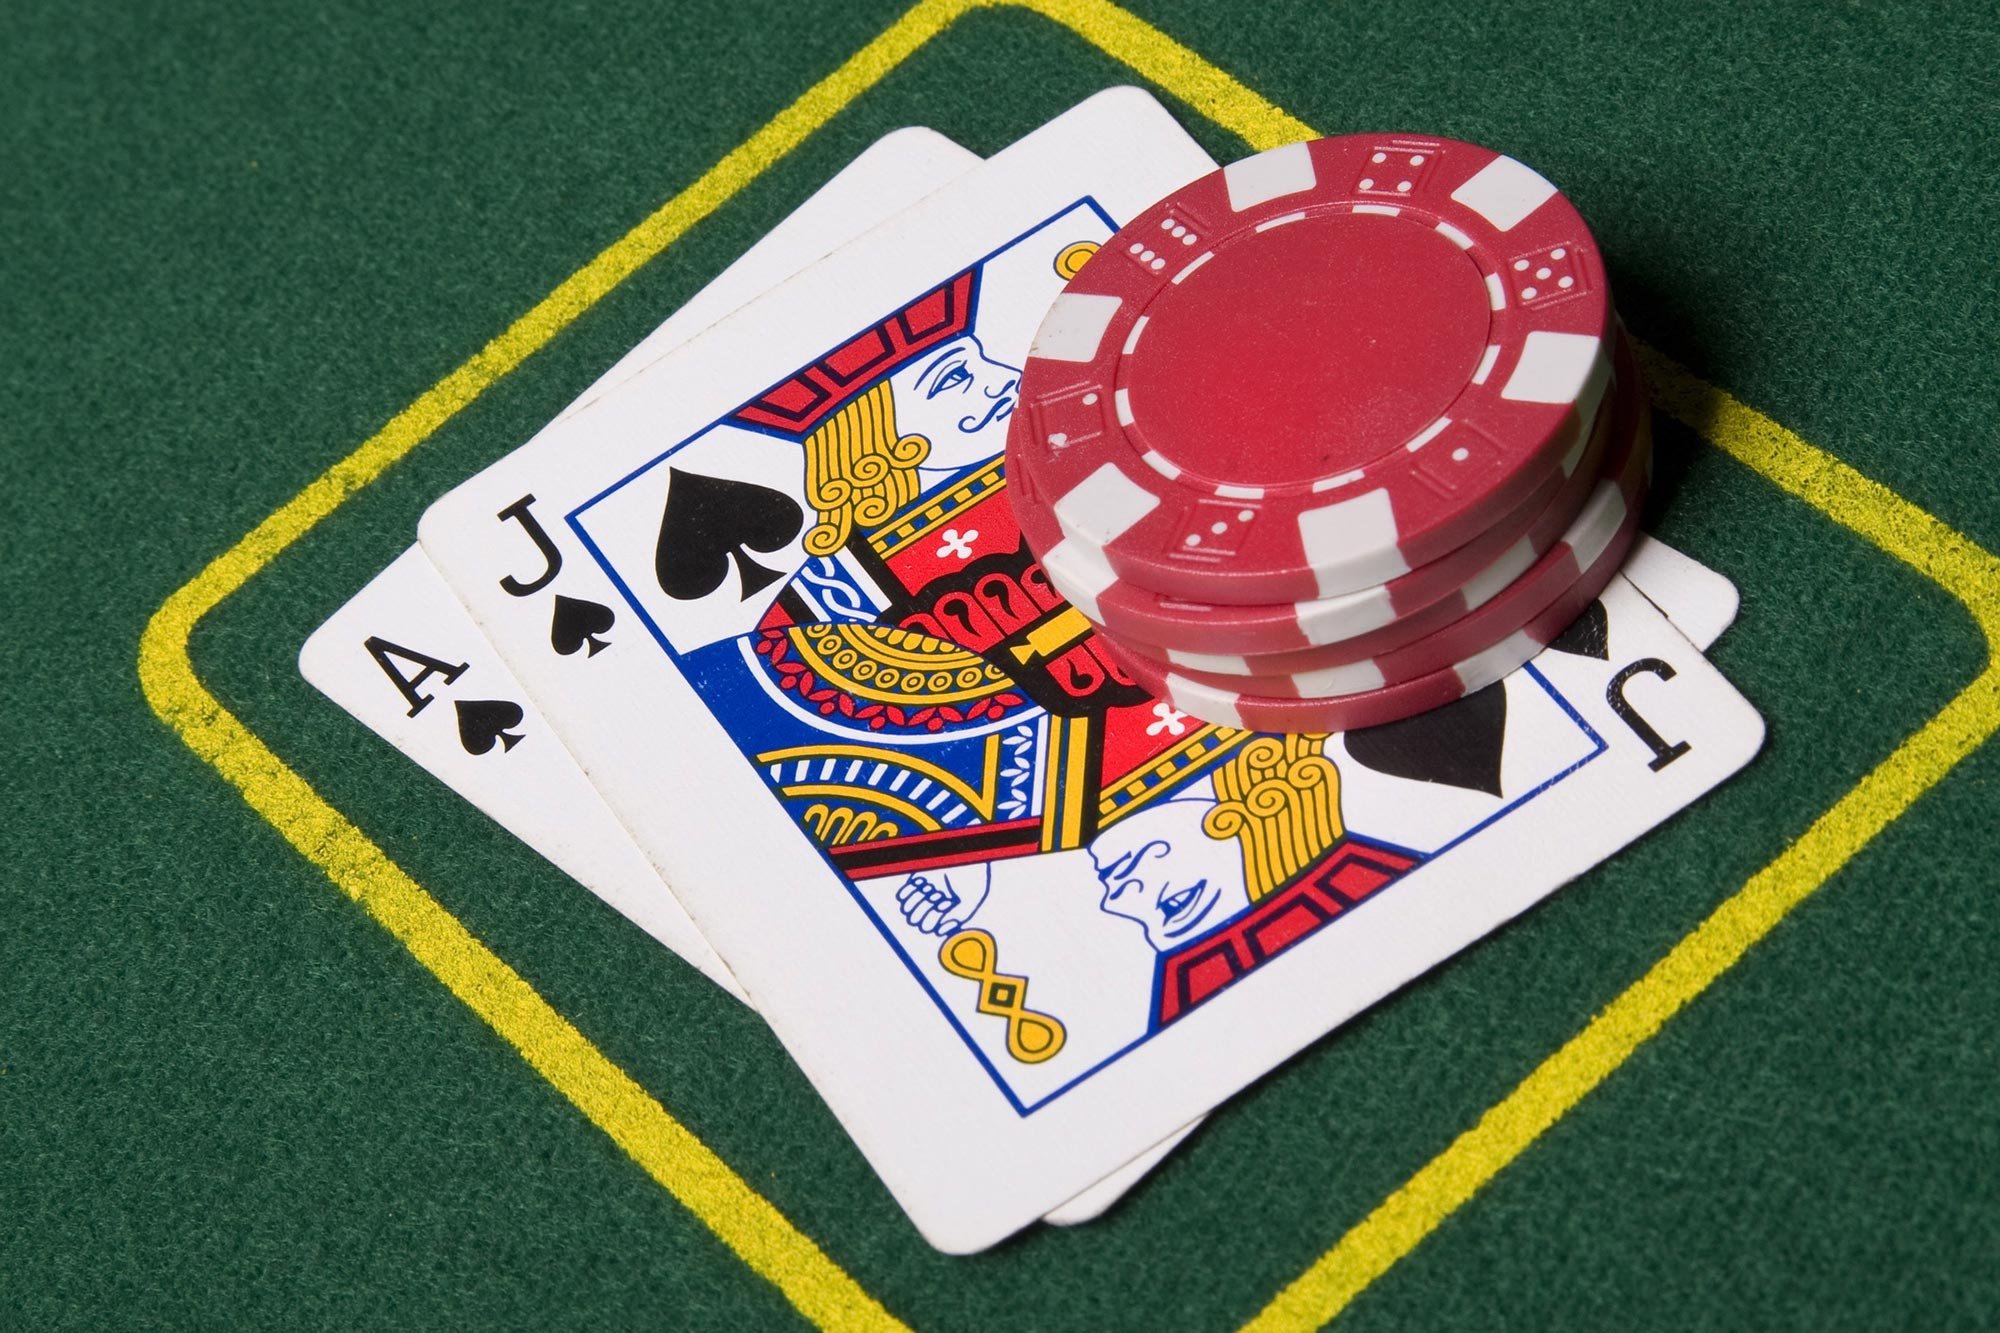 Quantum Blackjack: Using Quantum Entanglement to Gain an Advantage in the Game of Blackjack - SciTechDaily